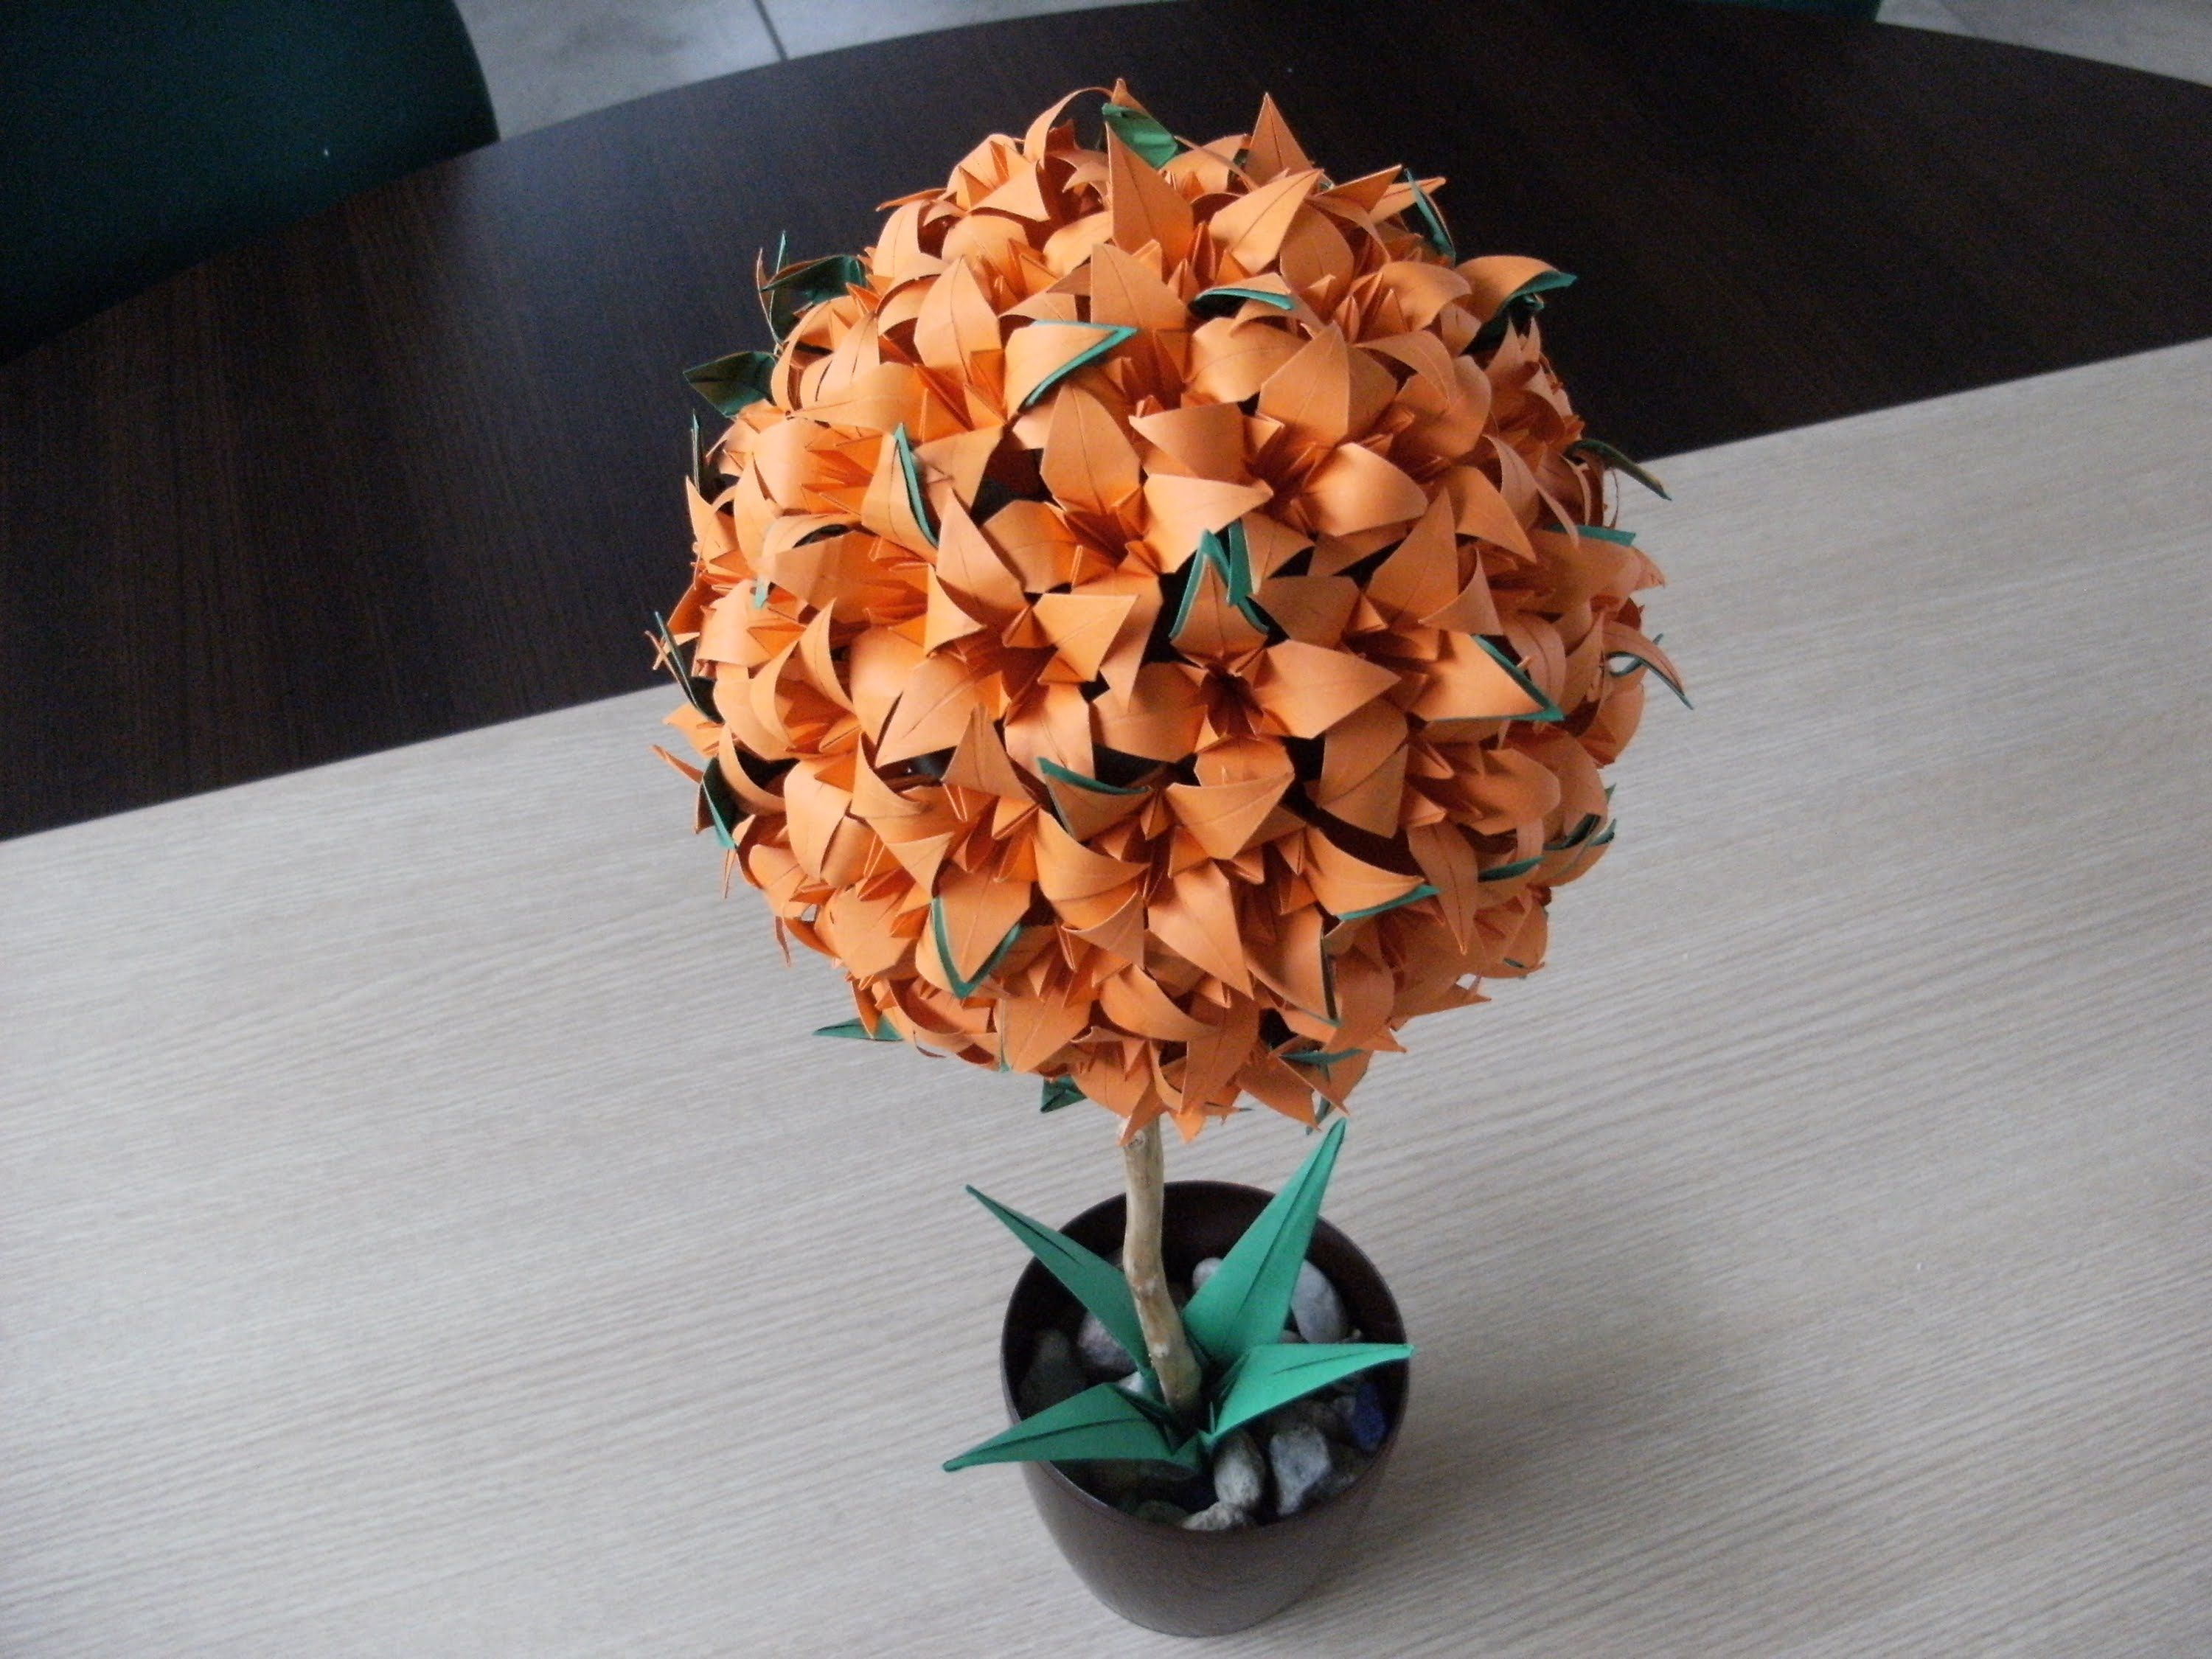 3d origami flower ball lily iris how to make crafts 3d origami flower ball lily iris how to make mightylinksfo